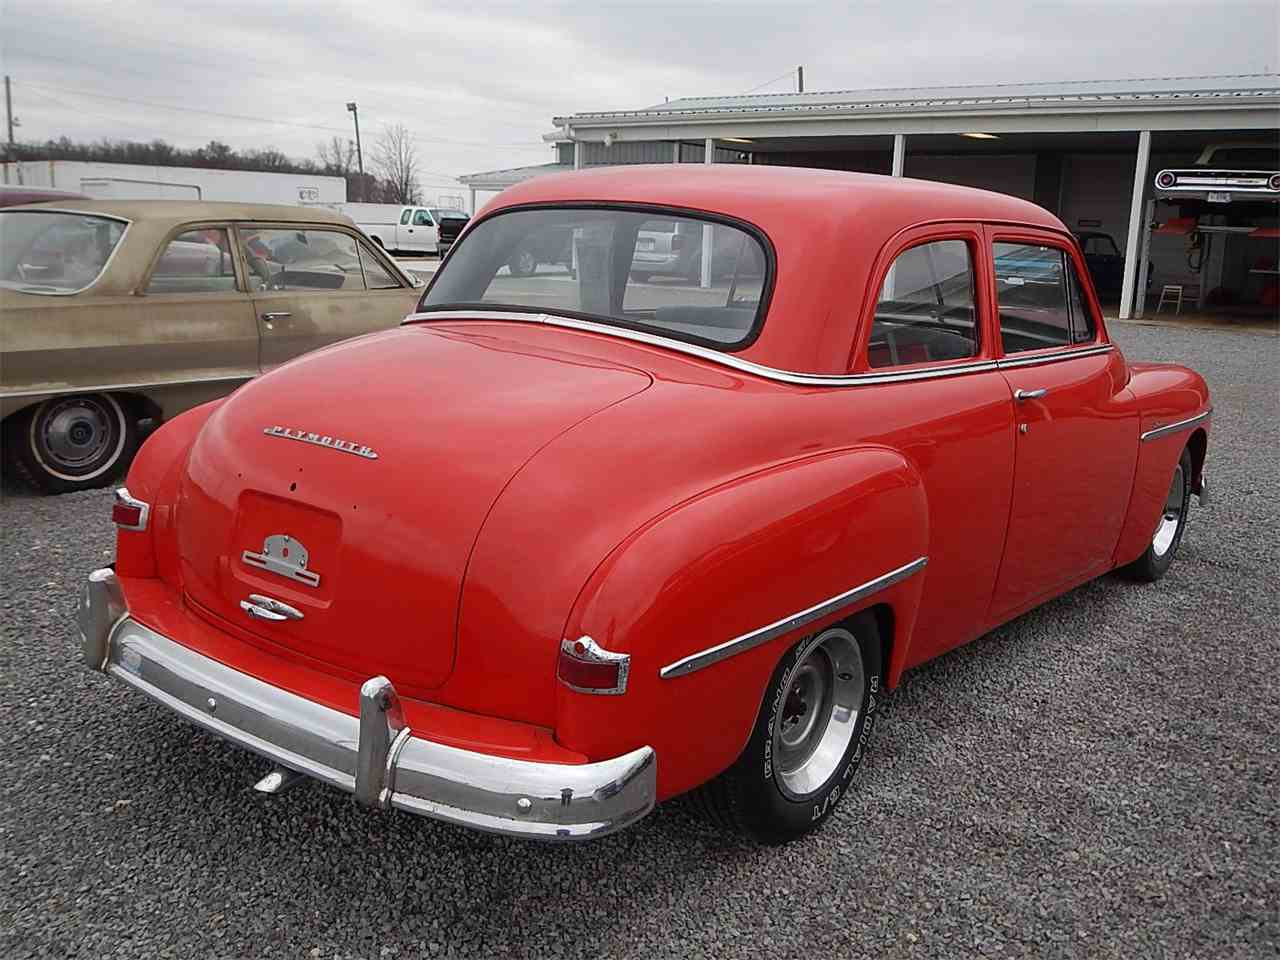 1950 Plymouth Seats : Plymouth special deluxe for sale classiccars